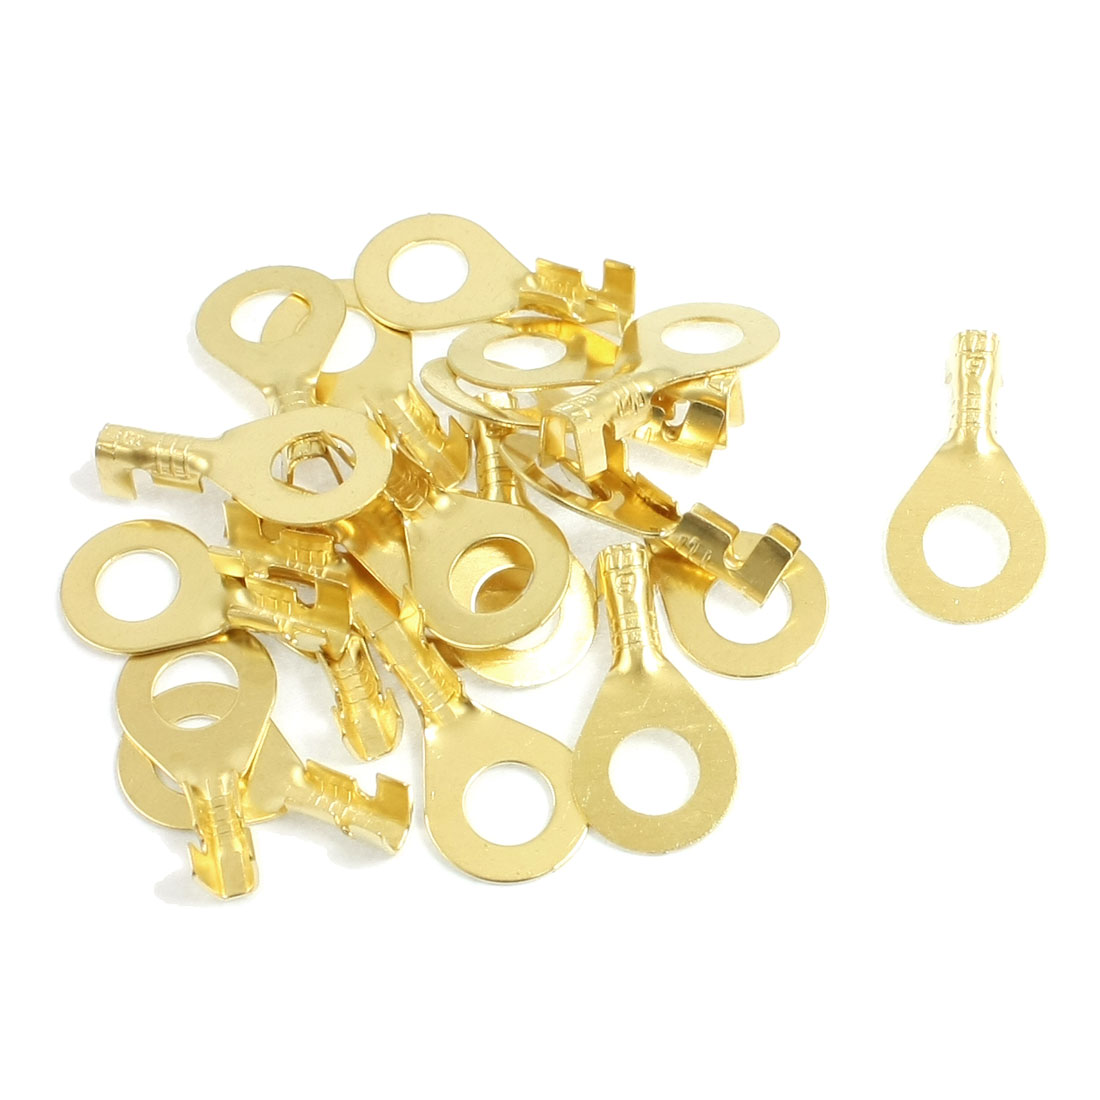 20 Pcs Quick Disconnects Non-insulated Ring Terminal Lug Connector 5mm